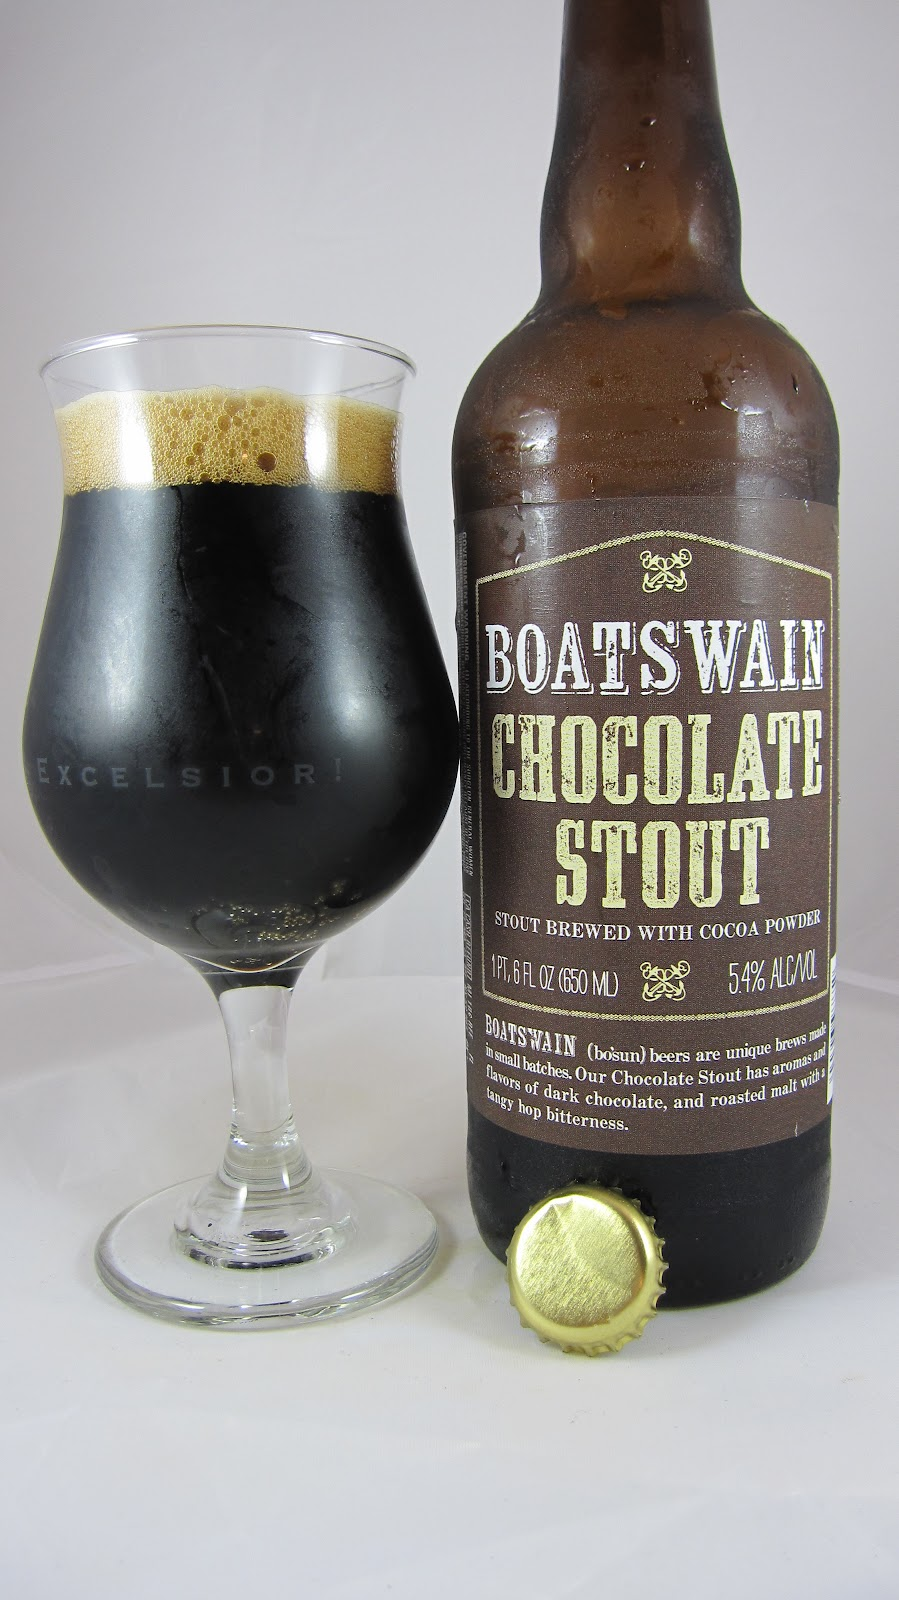 Chad'z Beer Reviews: Boatswain Chocolate Stout